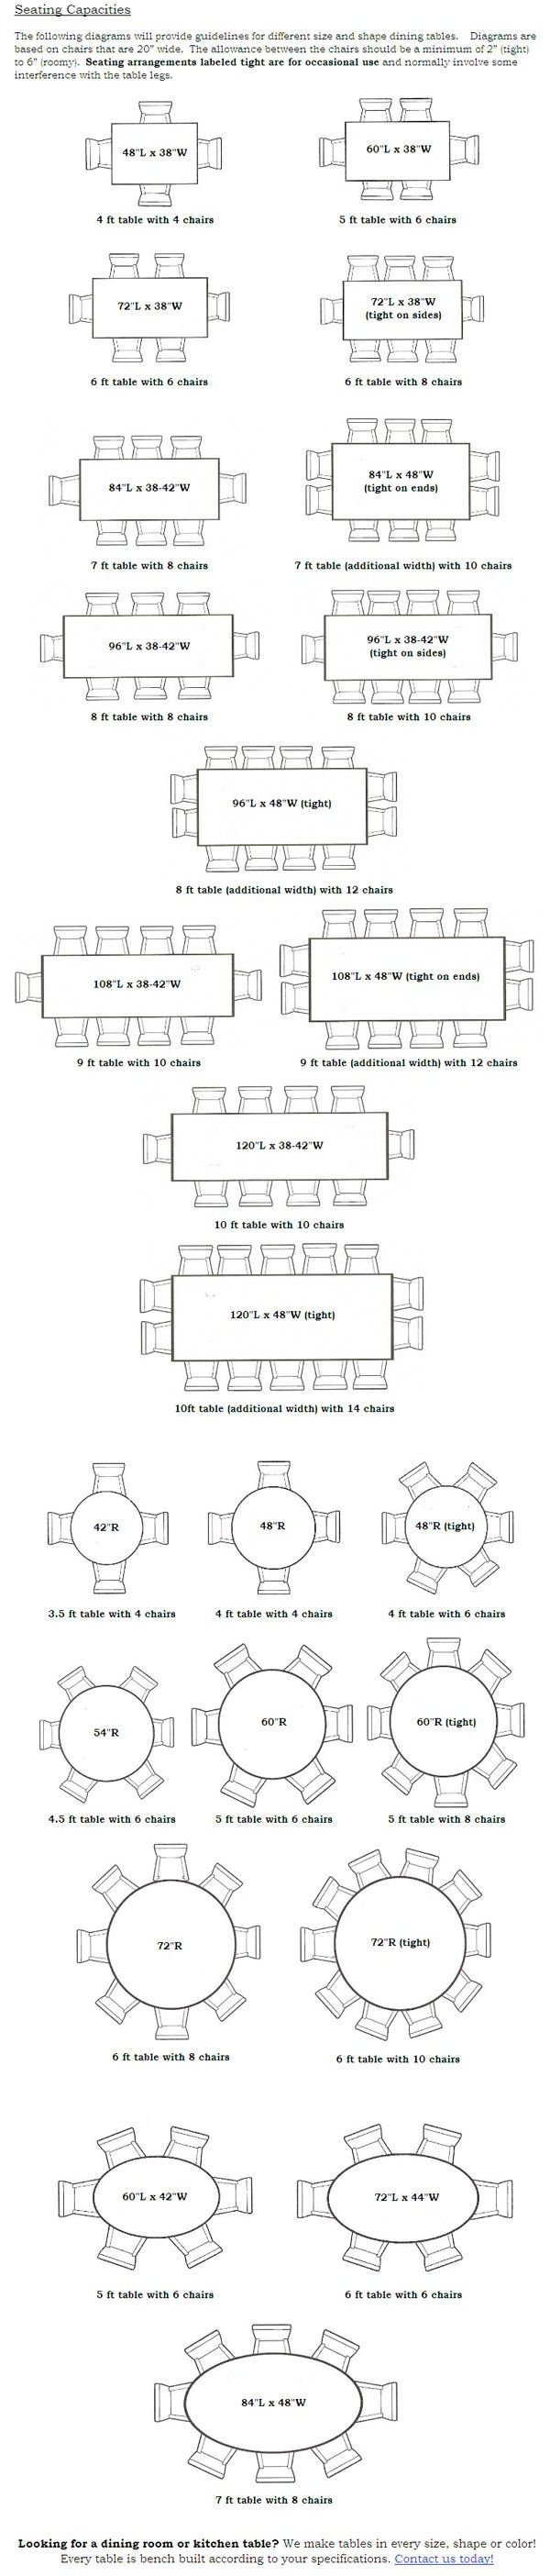 A Handy Visual Guide to Proper Seating